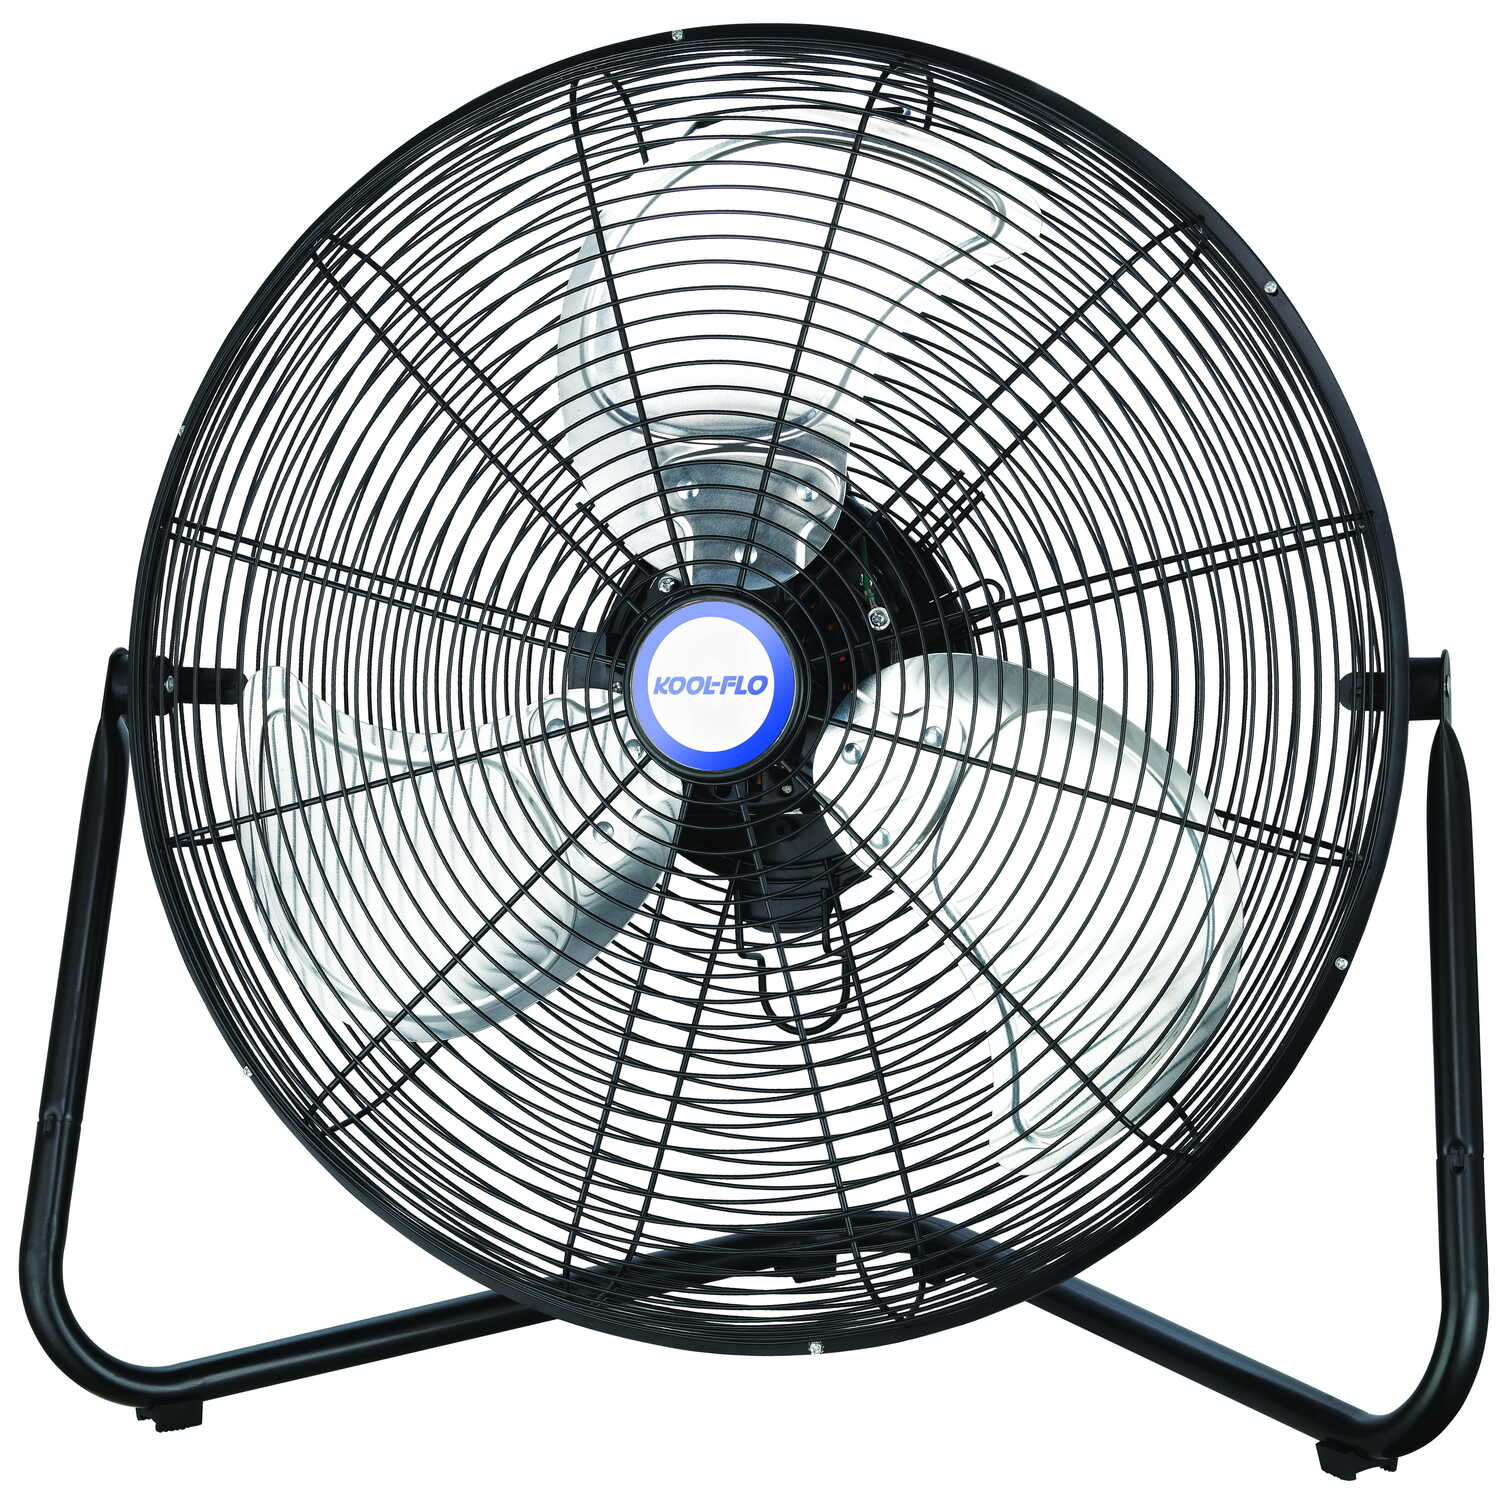 KOOL-FLO  20.04 in. H x 18 in. Dia. 3 speed Electric  High Velocity Fan